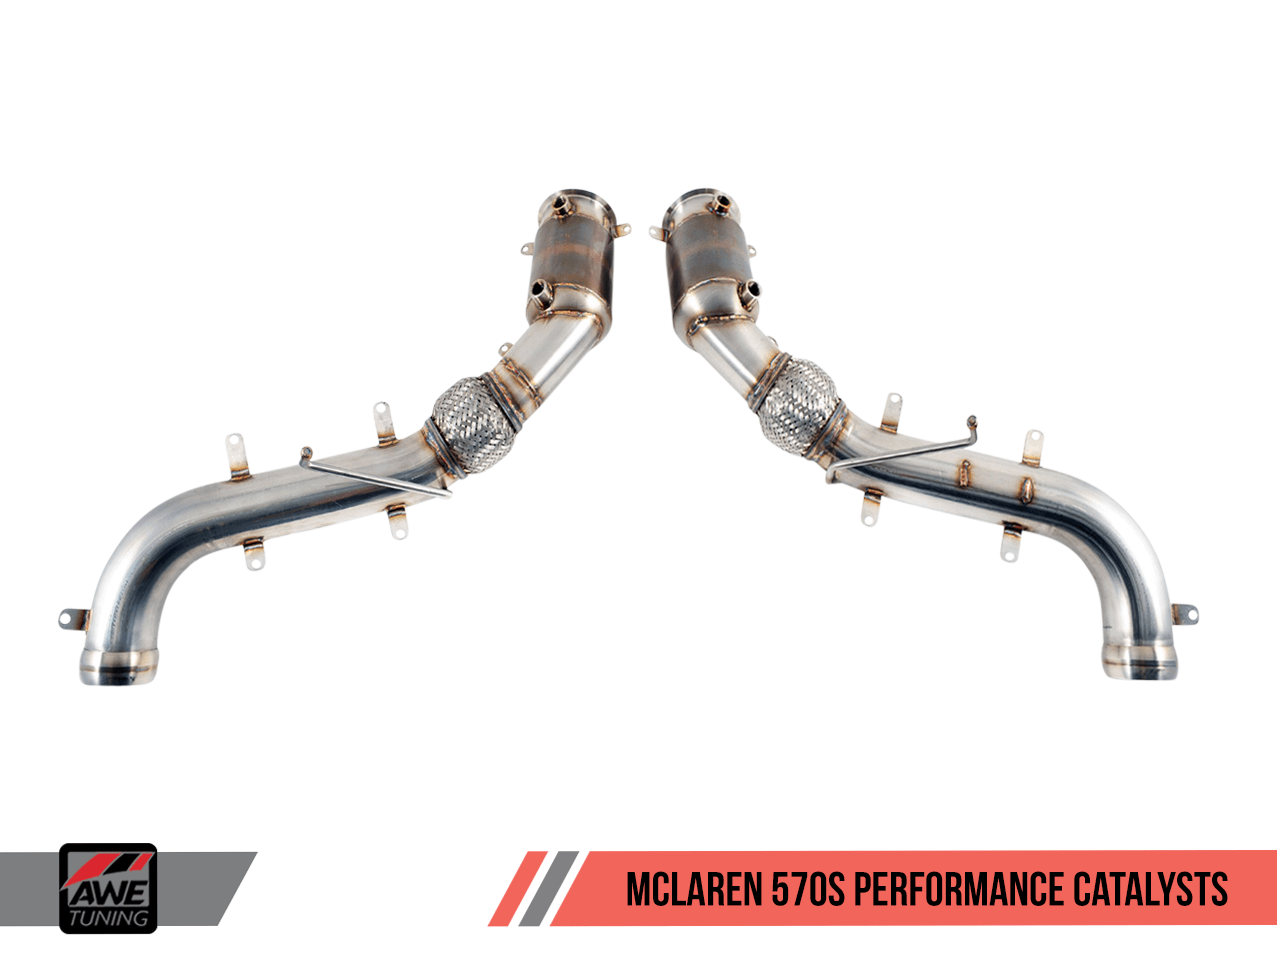 news awe tuning launches mclaren 570s exhaust suite awe